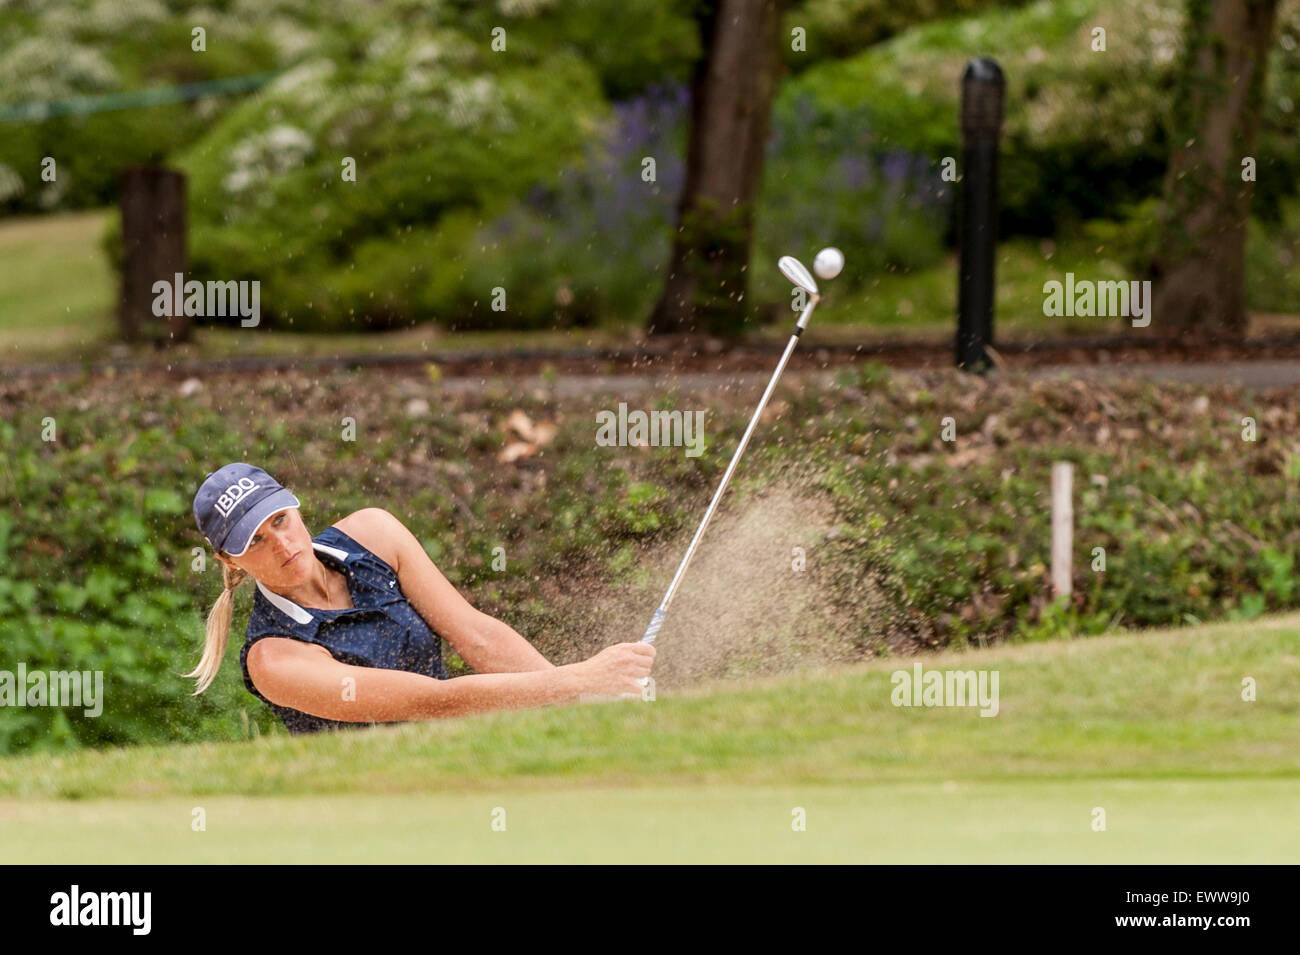 London, UK. 01 July 2015. Pro-am day for the ISPS HANDA Ladies European Masters at the Buckinghamshire golf course. - Stock Image